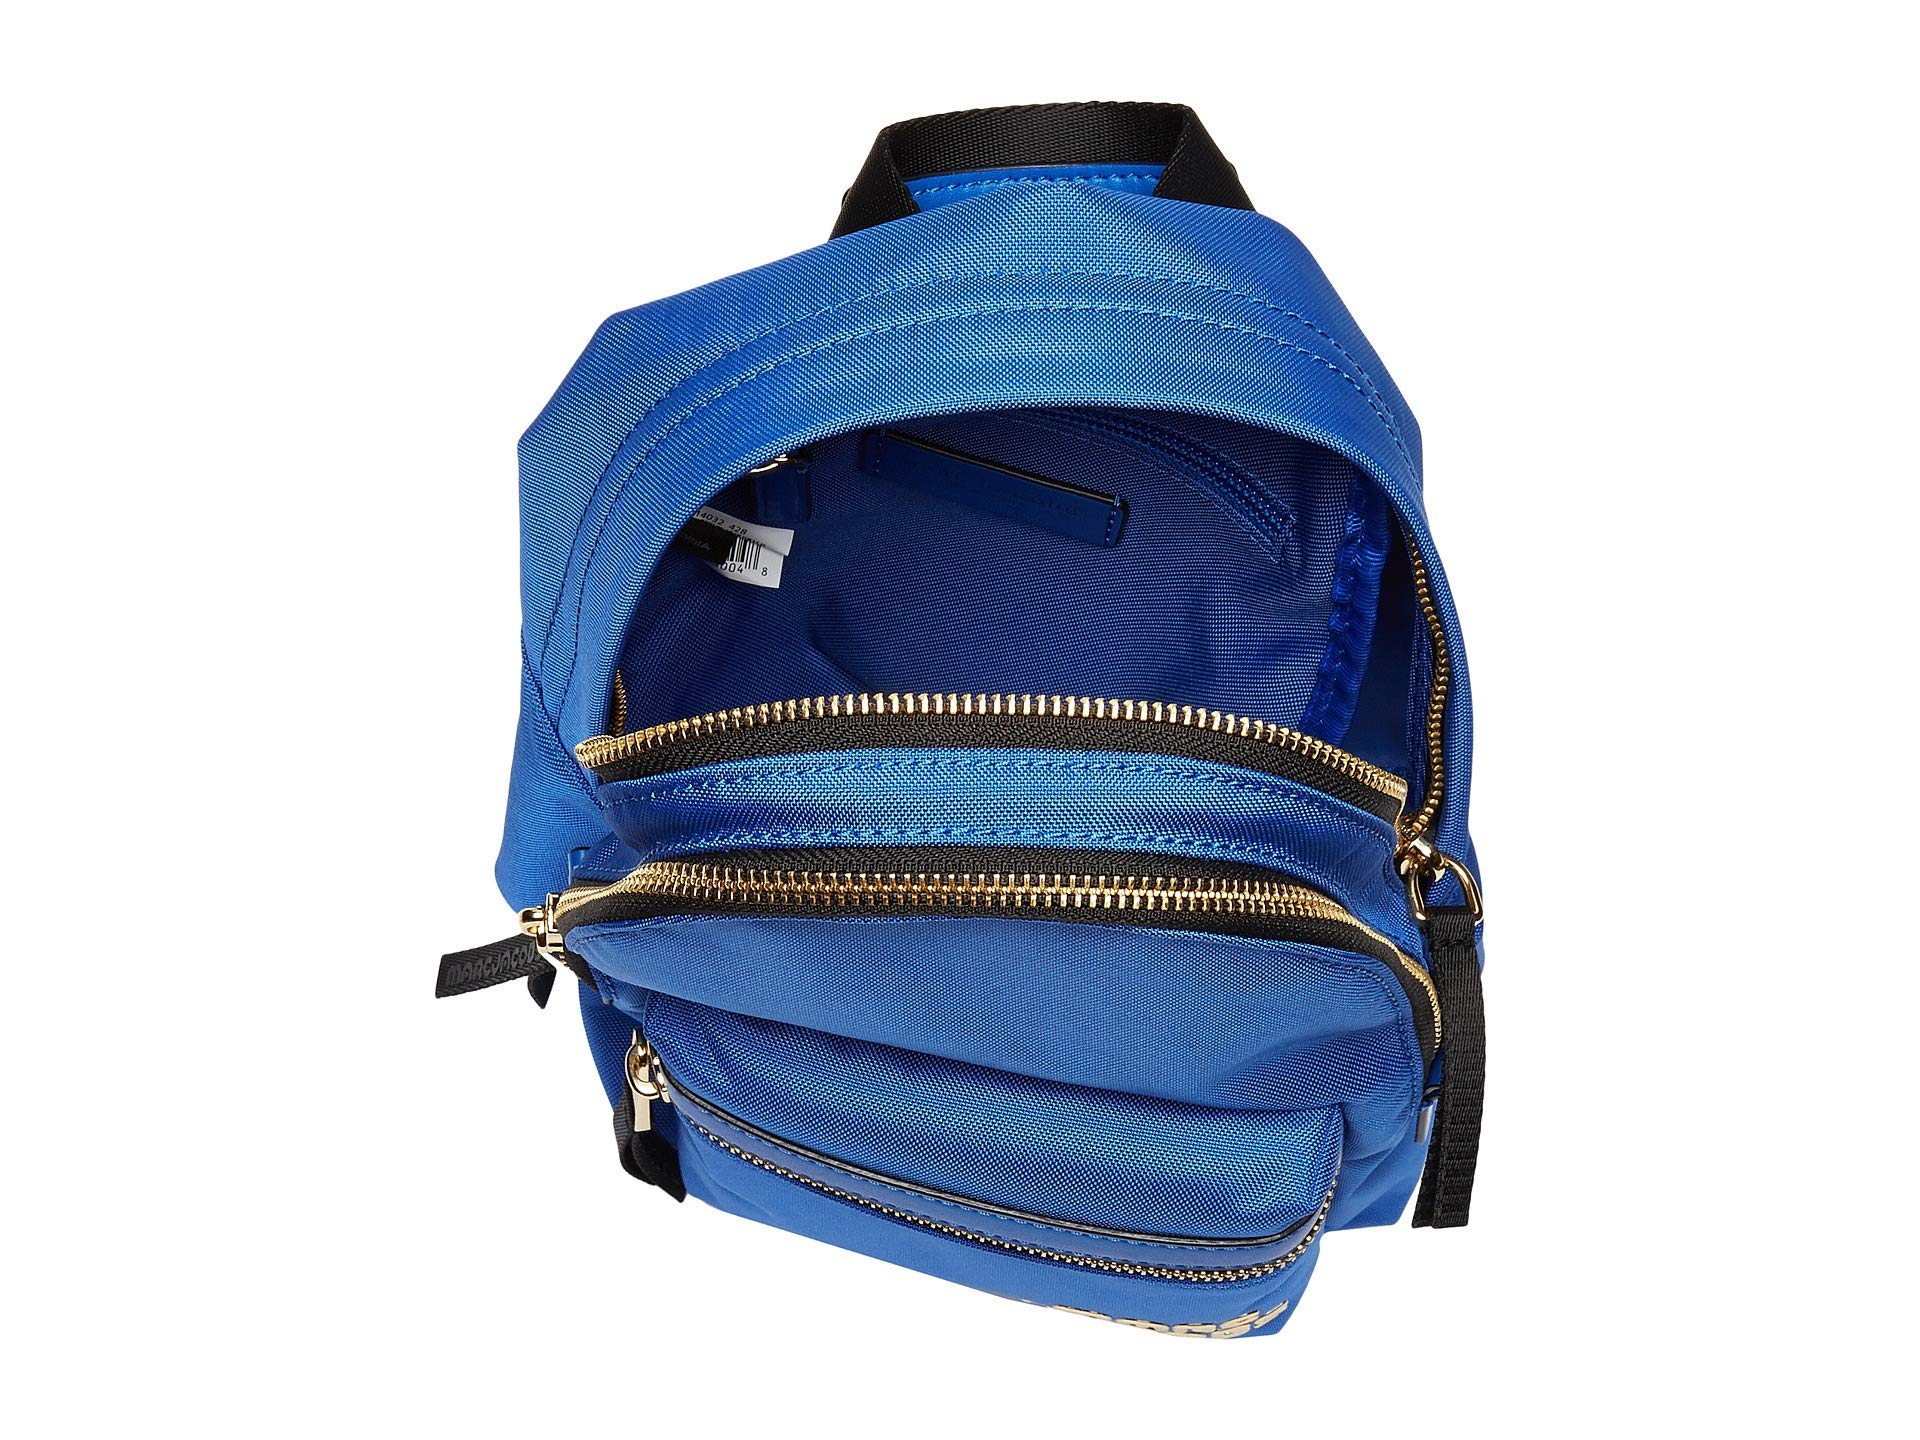 Blue Mini Marc Backpack Trek Dazzling Pack Jacobs qfYYSxw40